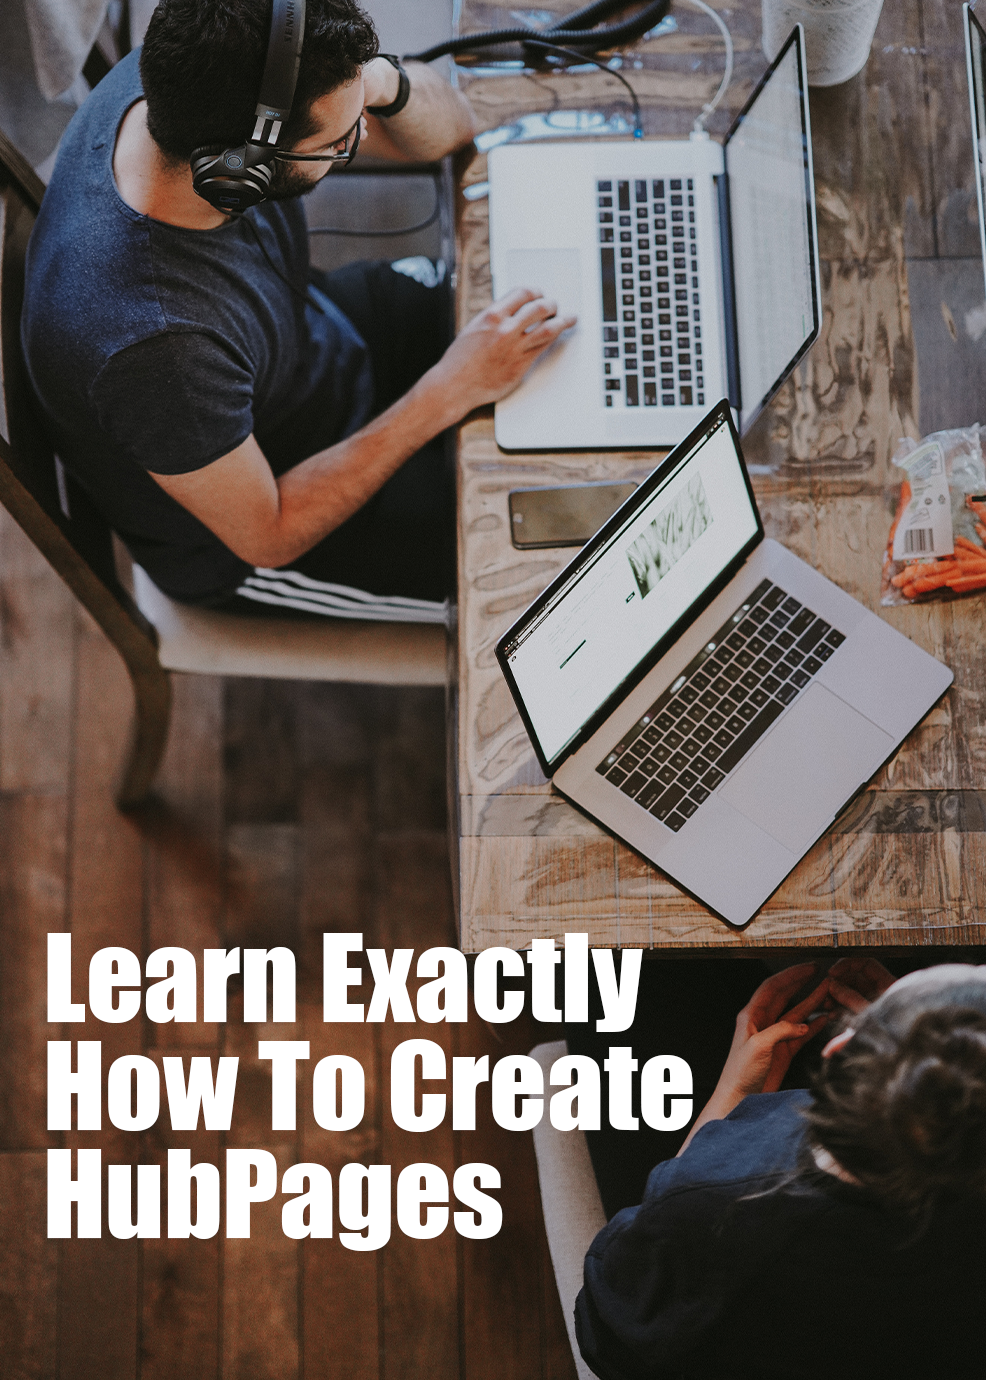 Learn Exactly How To Create HubPages